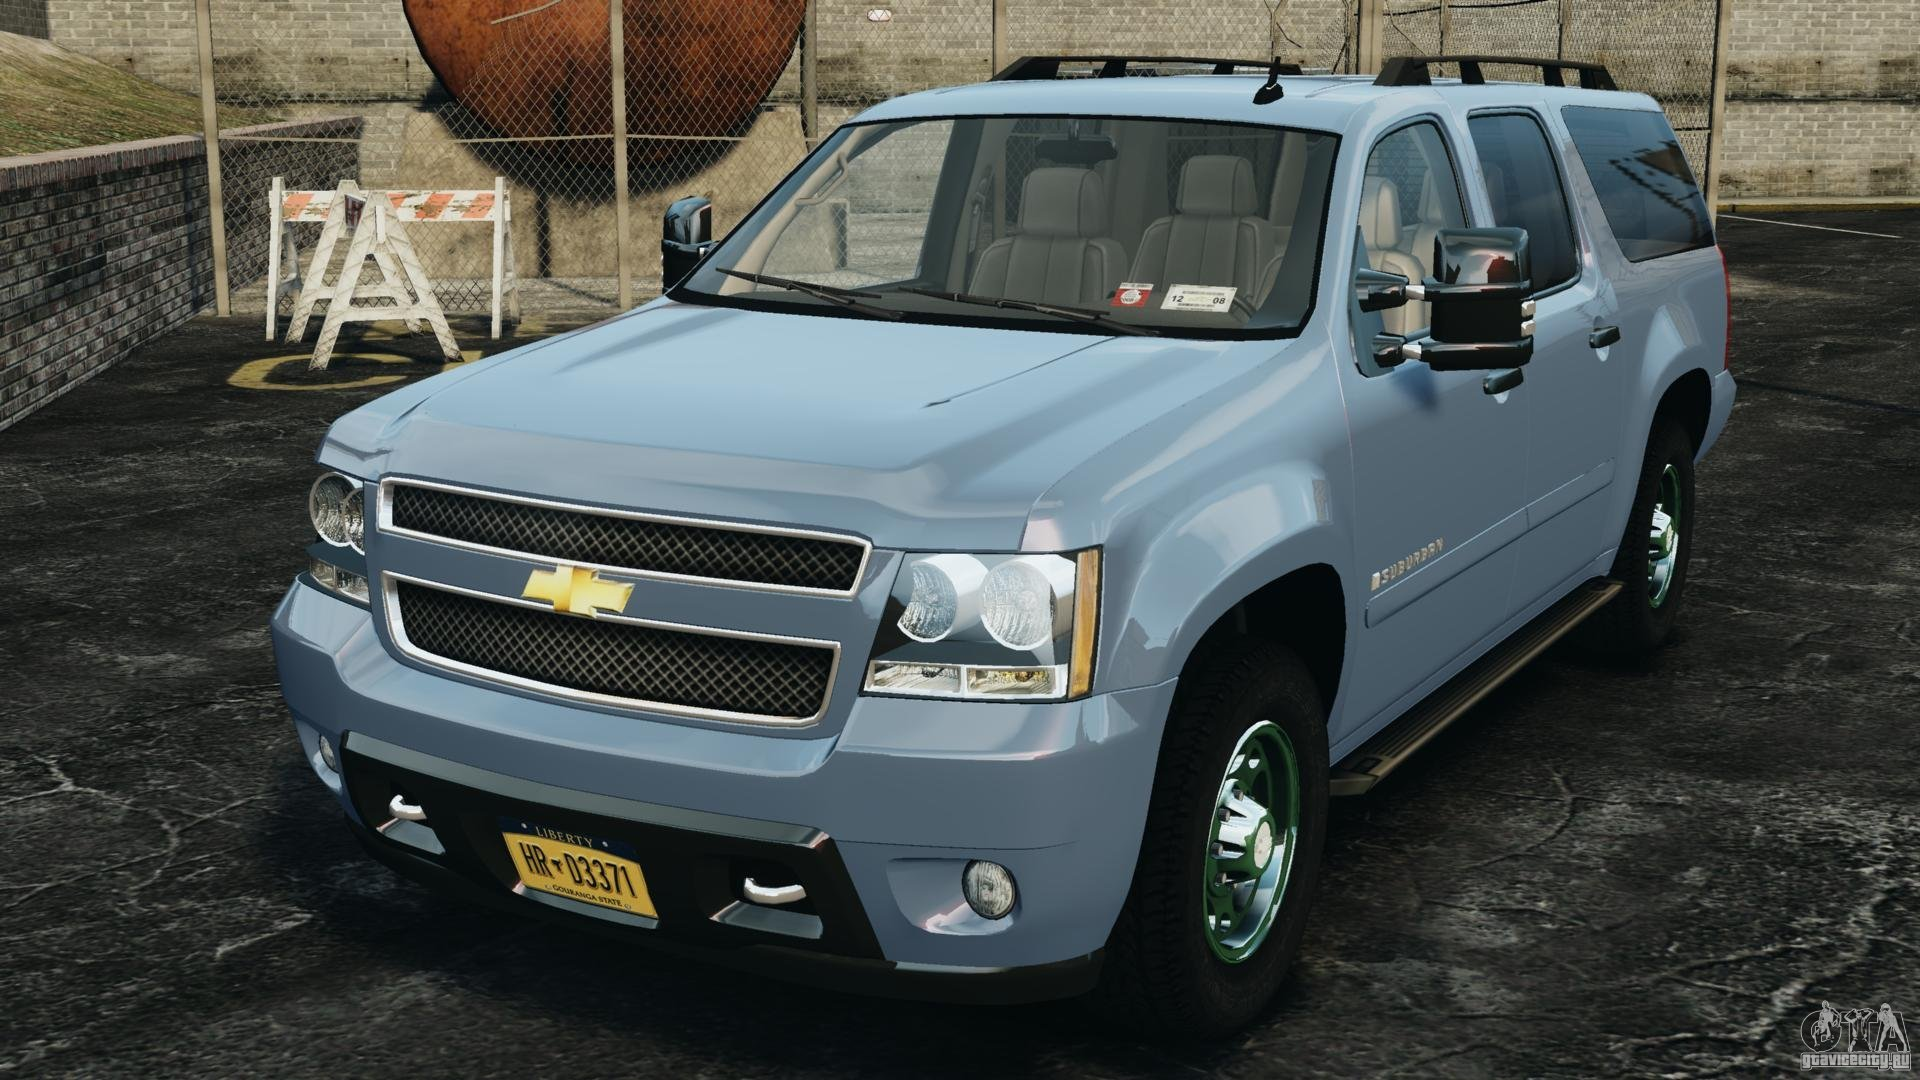 2012 chevrolet suburban gmt900 pictures information and specs auto. Black Bedroom Furniture Sets. Home Design Ideas